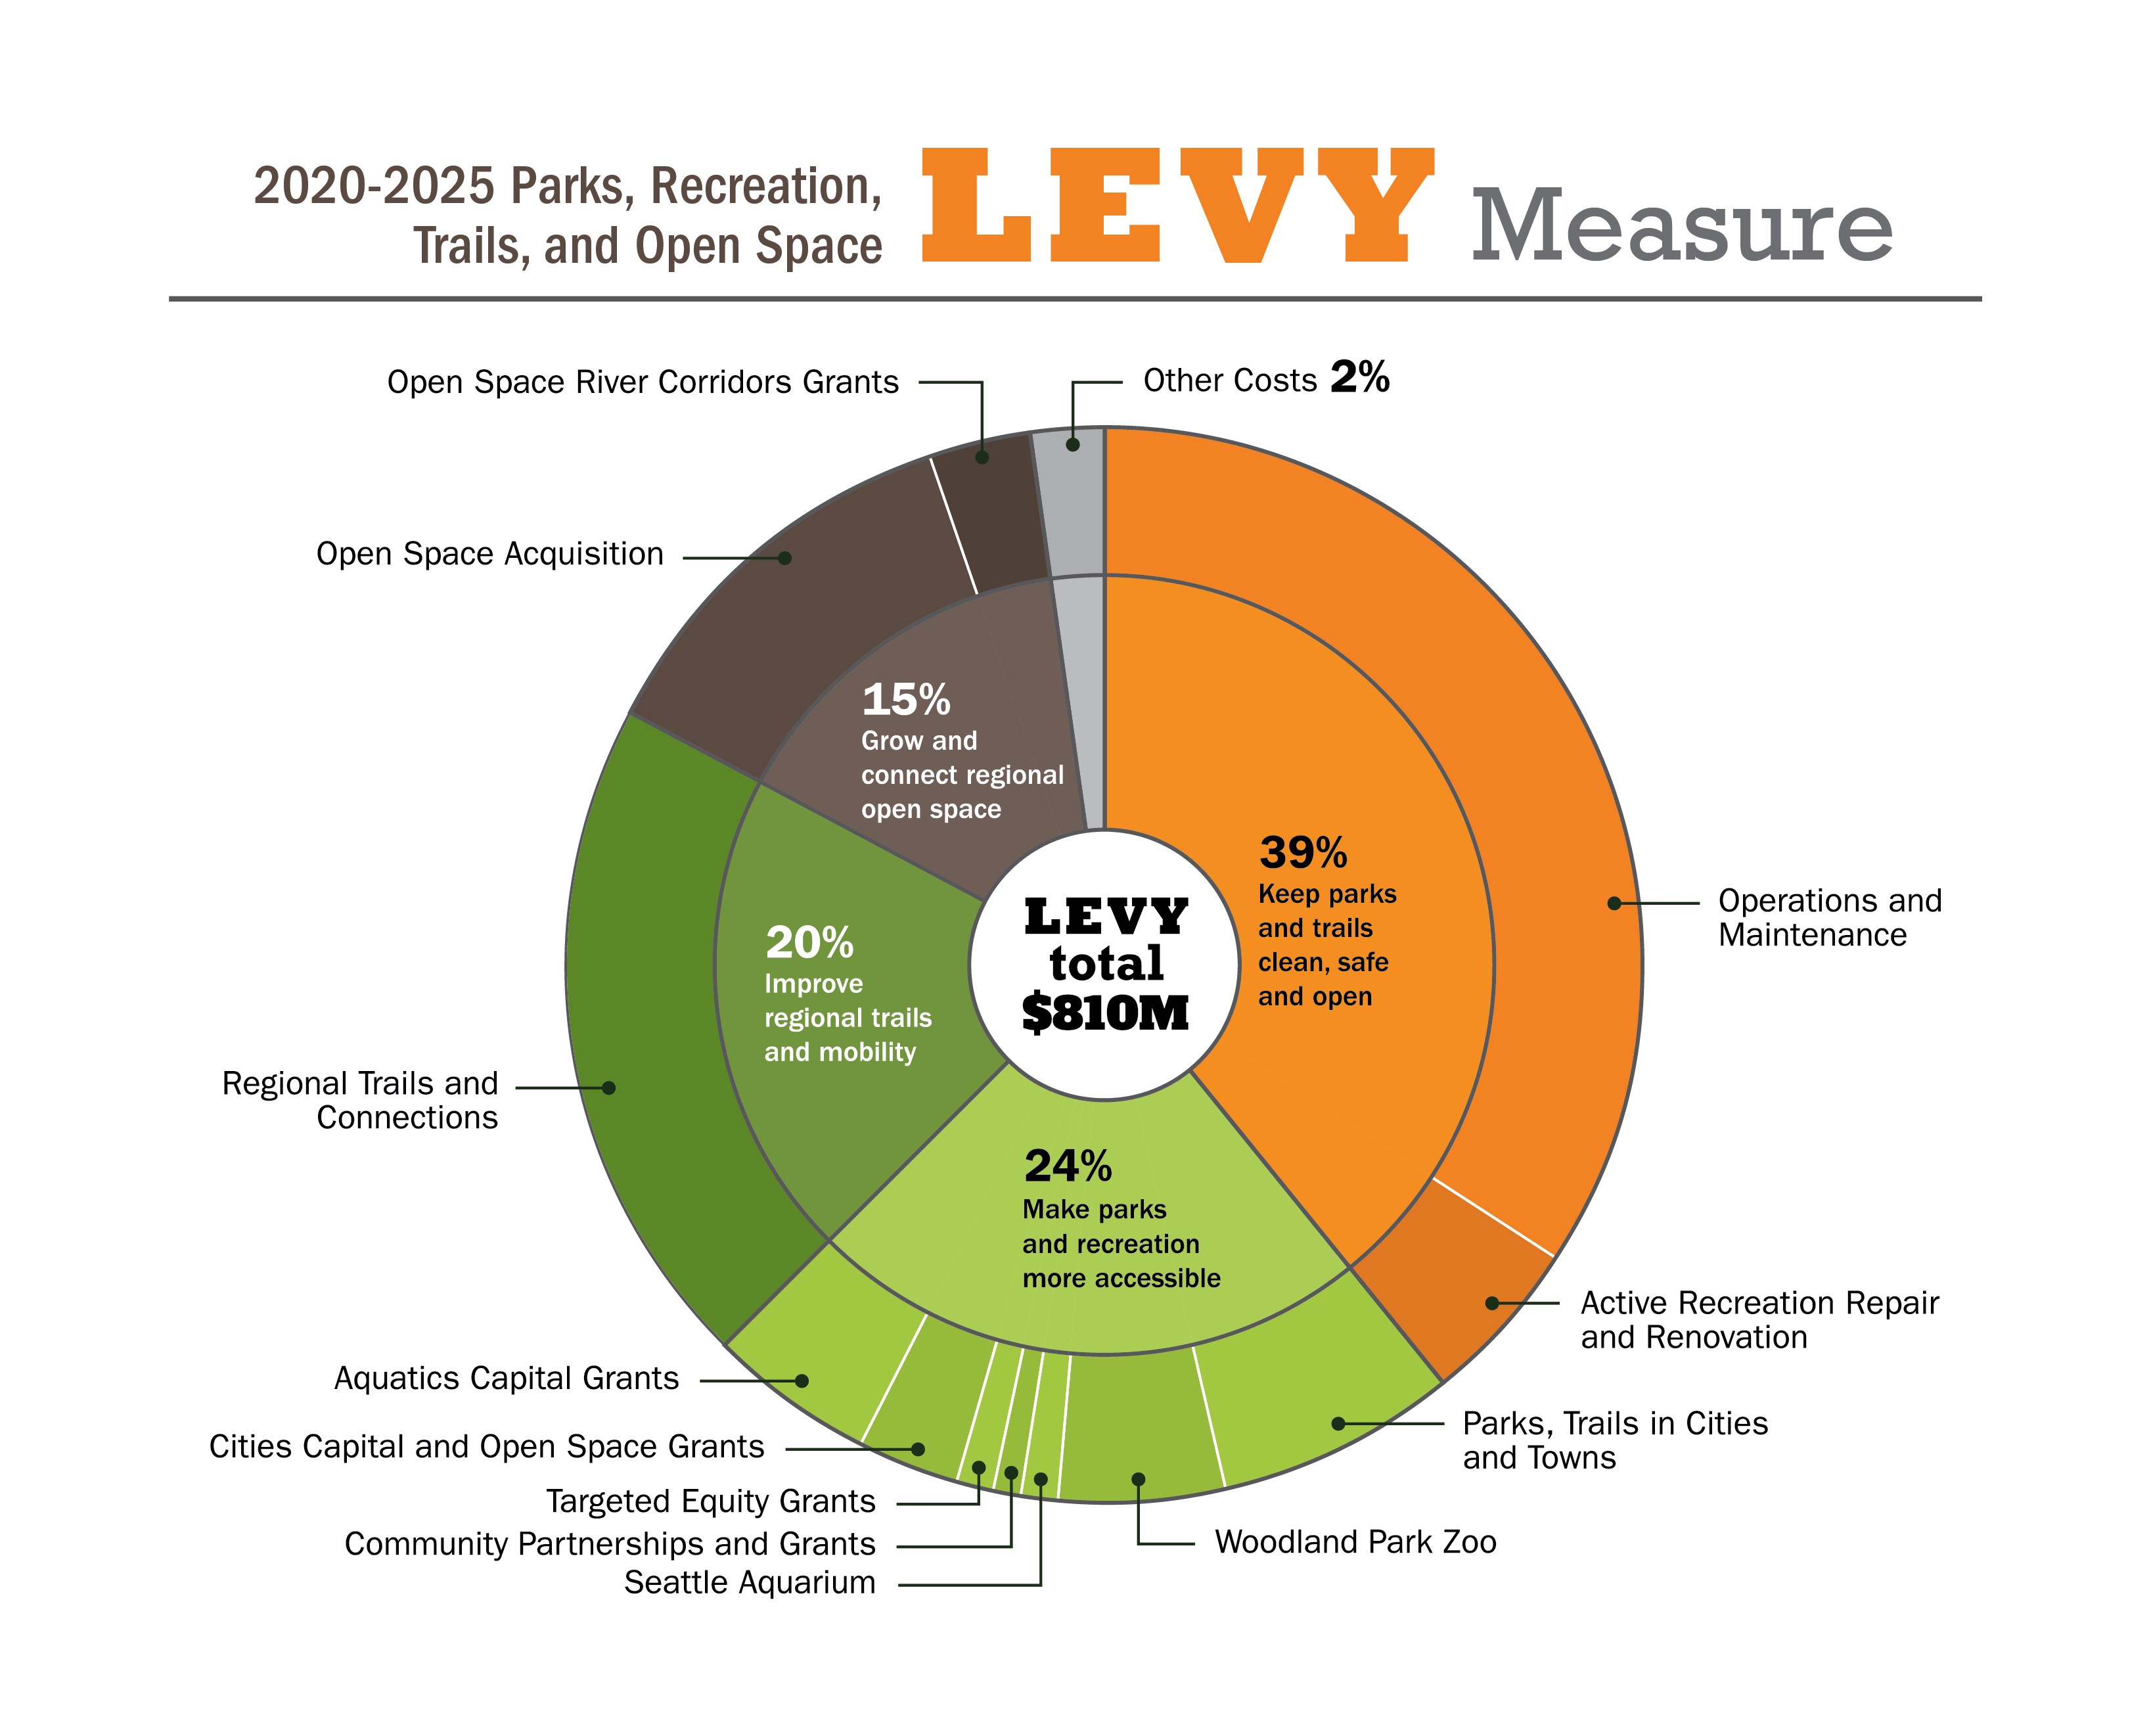 2020-2025_King_County_Parks_Recreation_Trails_Open_Space_Levy_Measure